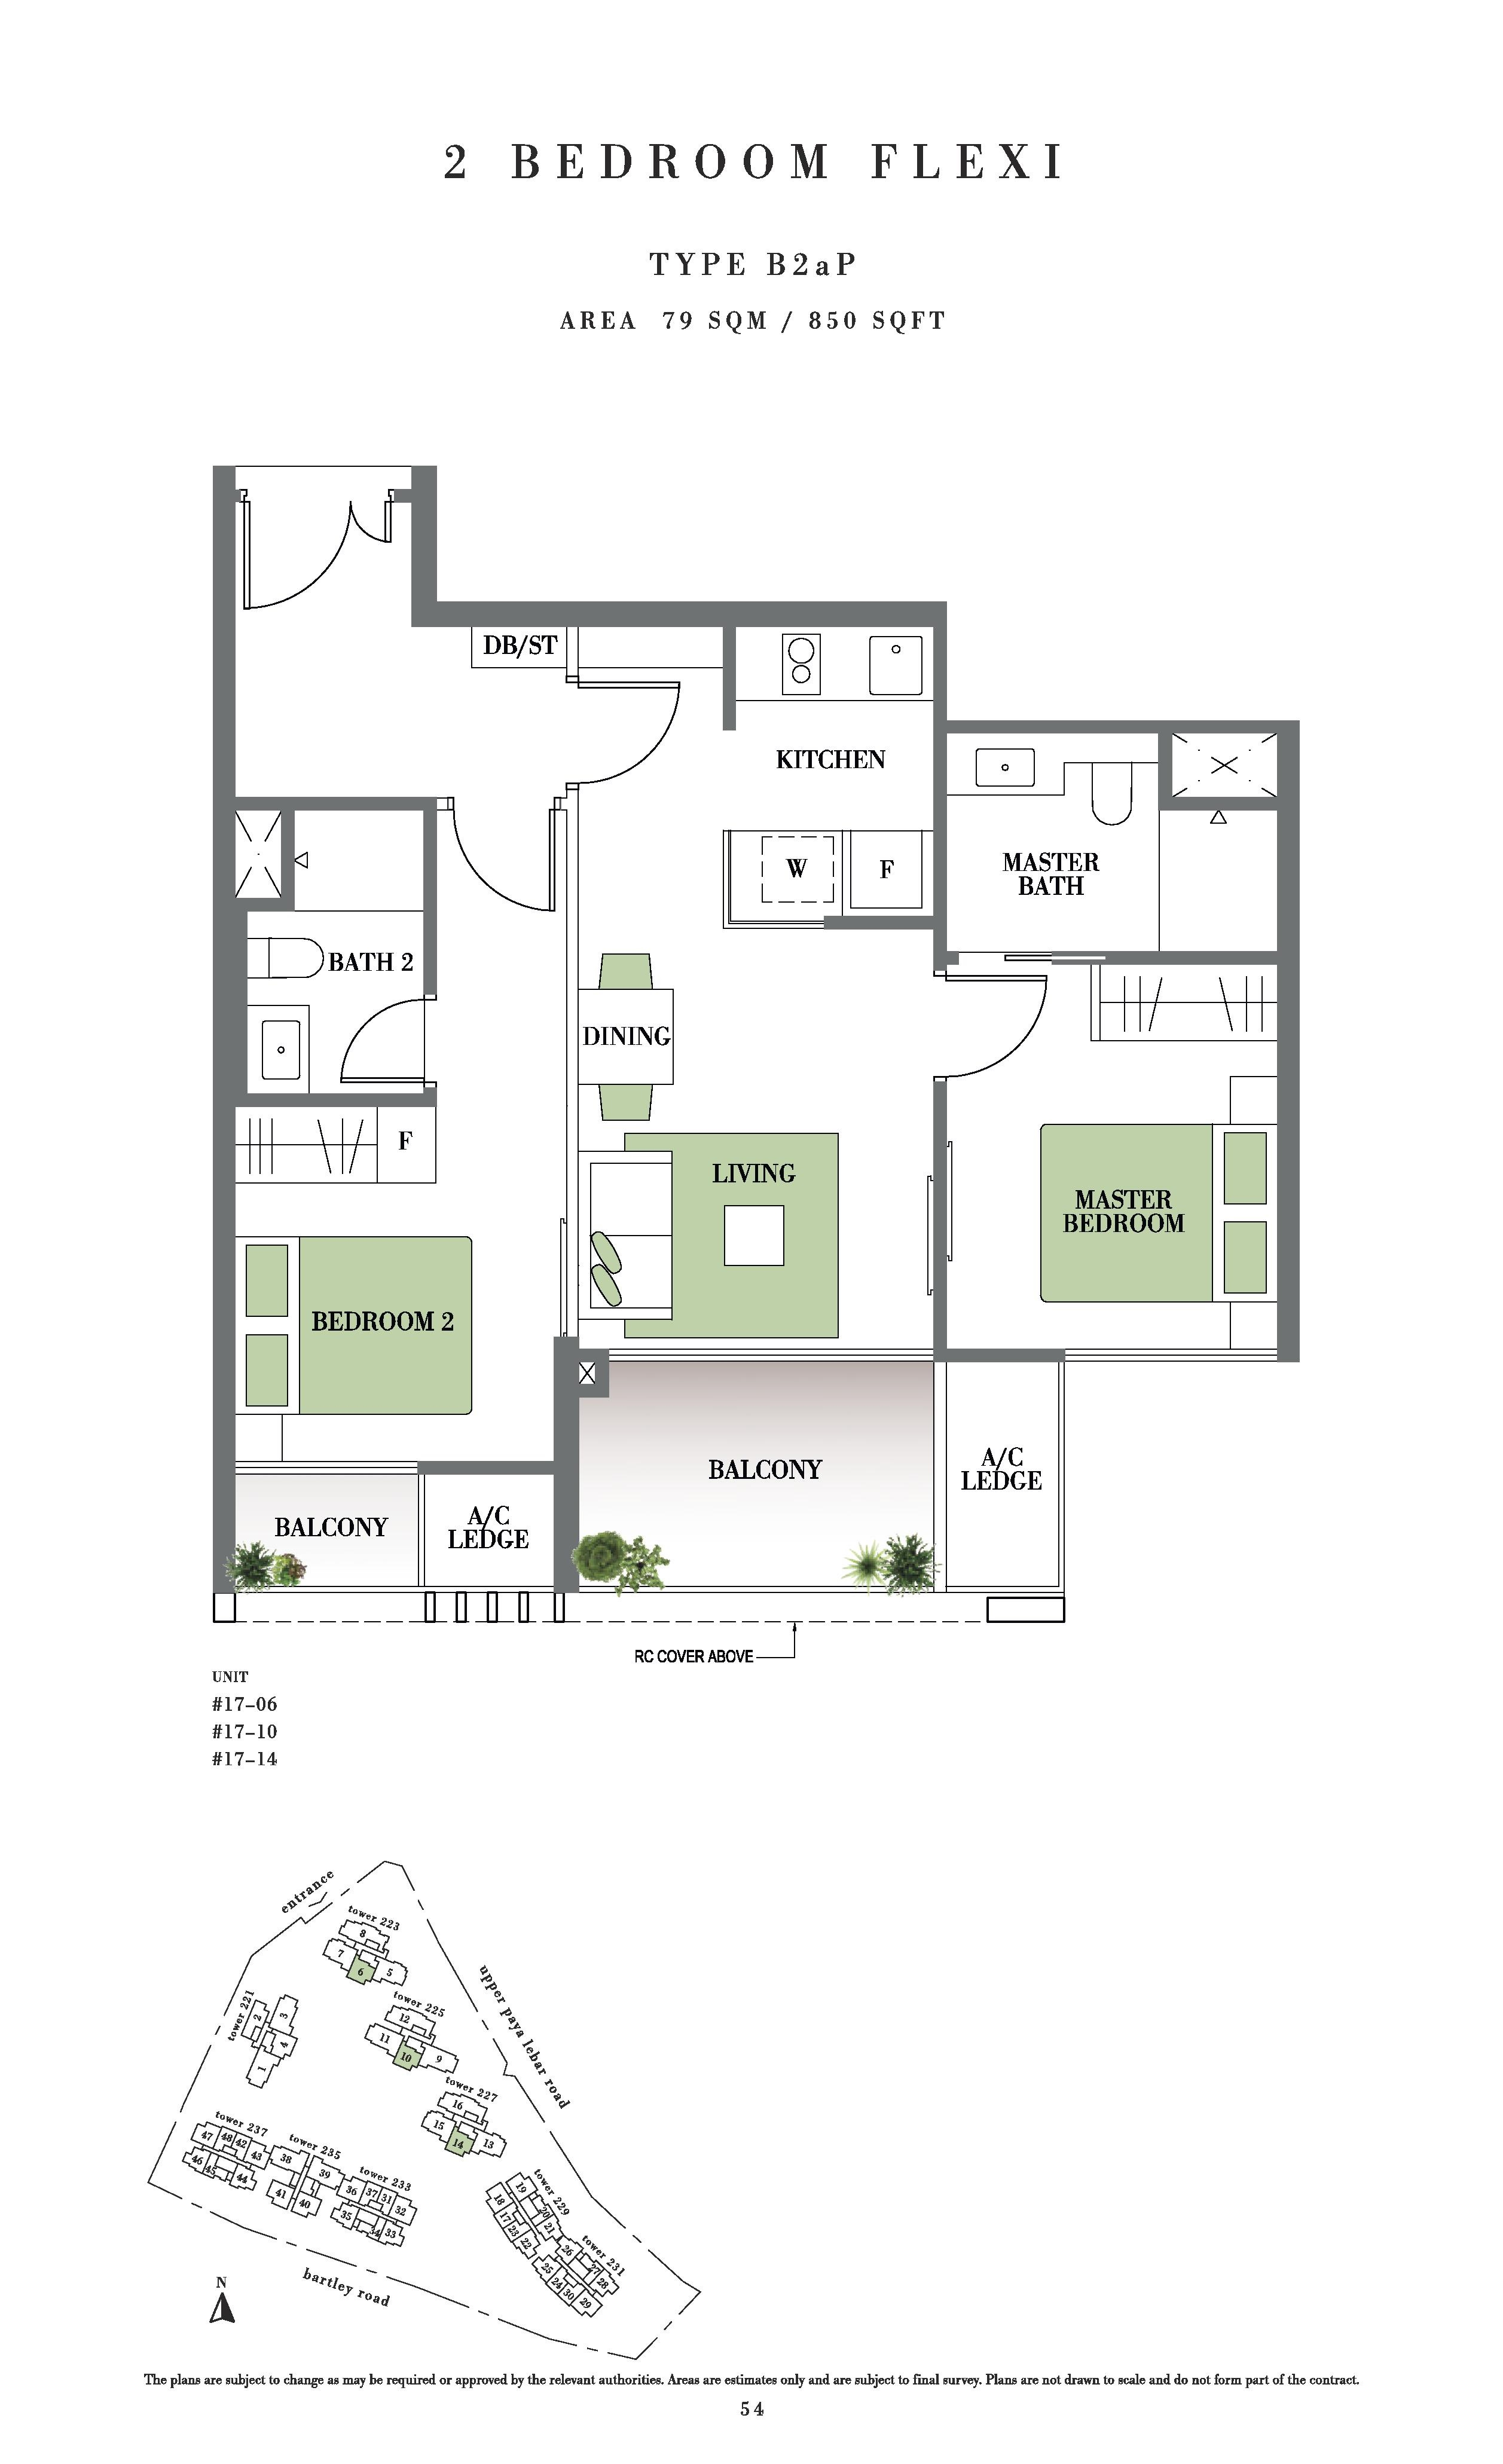 Botanique @ Bartley 2 Bedroom Flexi Floor Plans Type B2aP